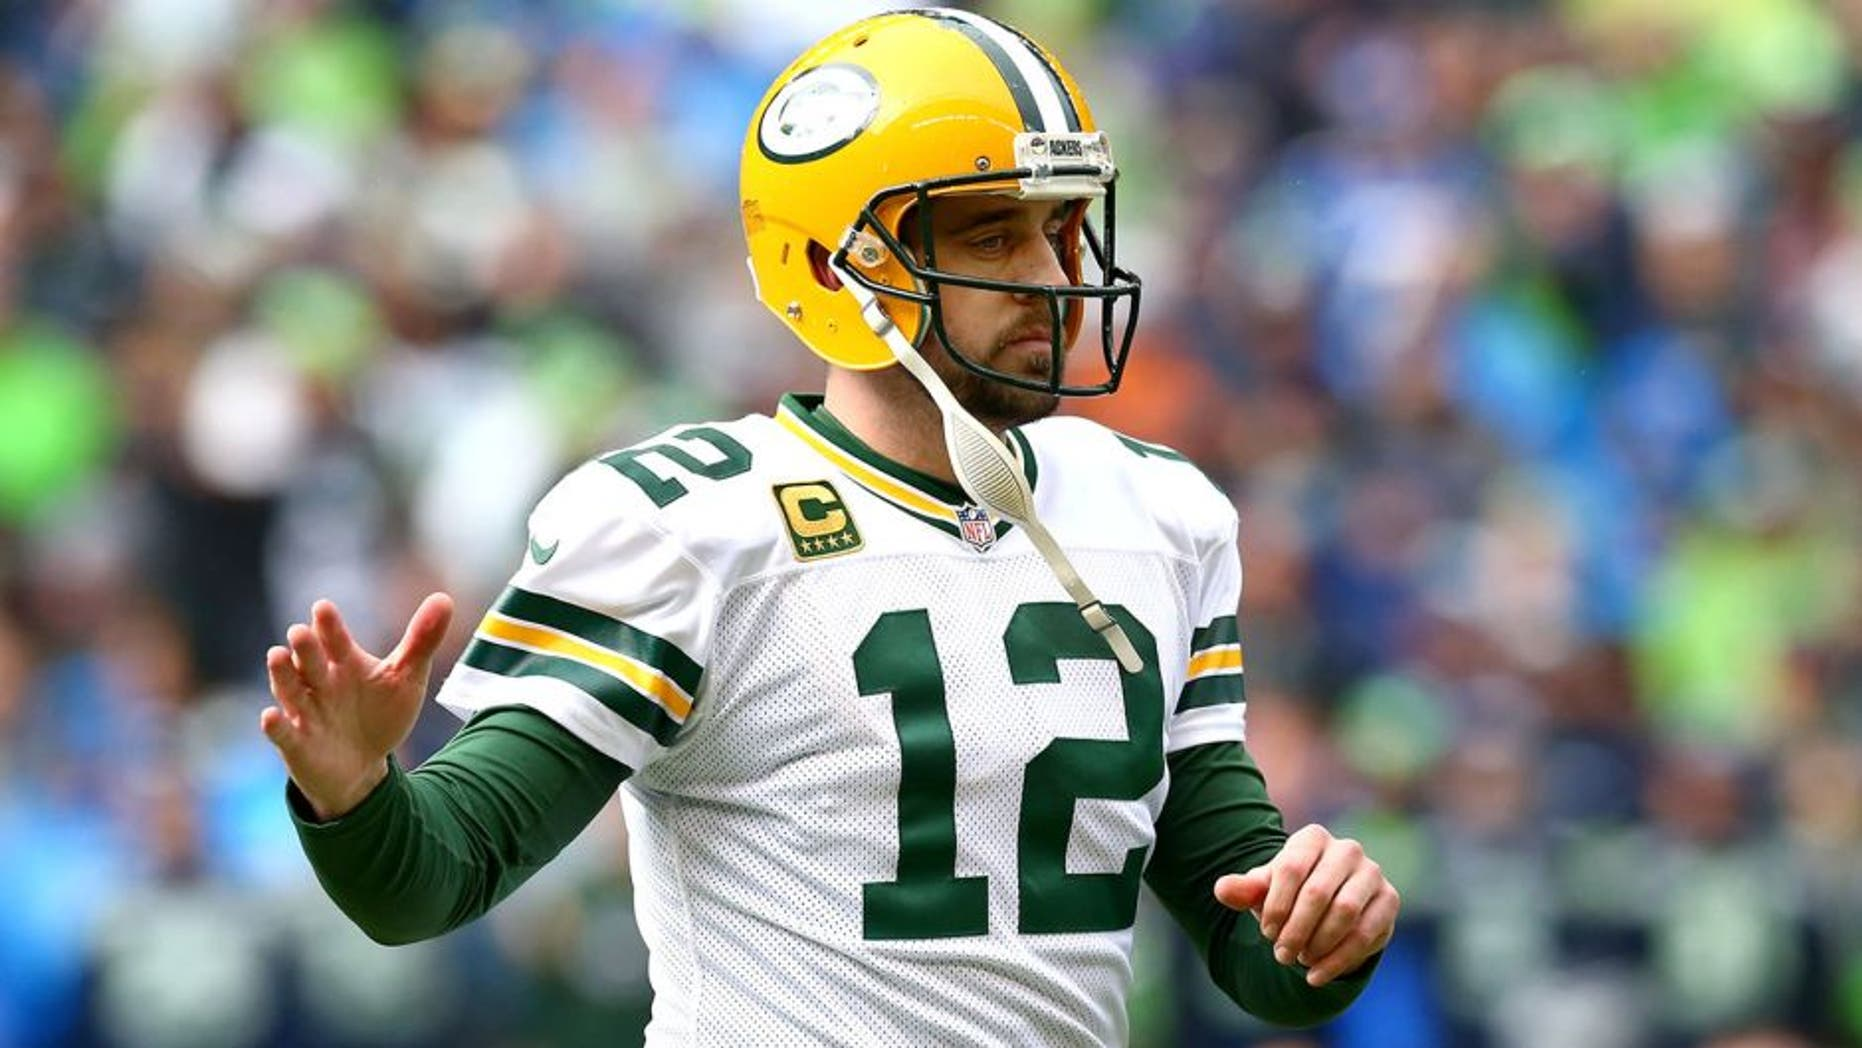 SEATTLE, WA - JANUARY 18: Aaron Rodgers #12 of the Green Bay Packers in action against the Seattle Seahawks during the 2015 NFC Championship game at CenturyLink Field on January 18, 2015 in Seattle, Washington. (Photo by Ronald Martinez/Getty Images)